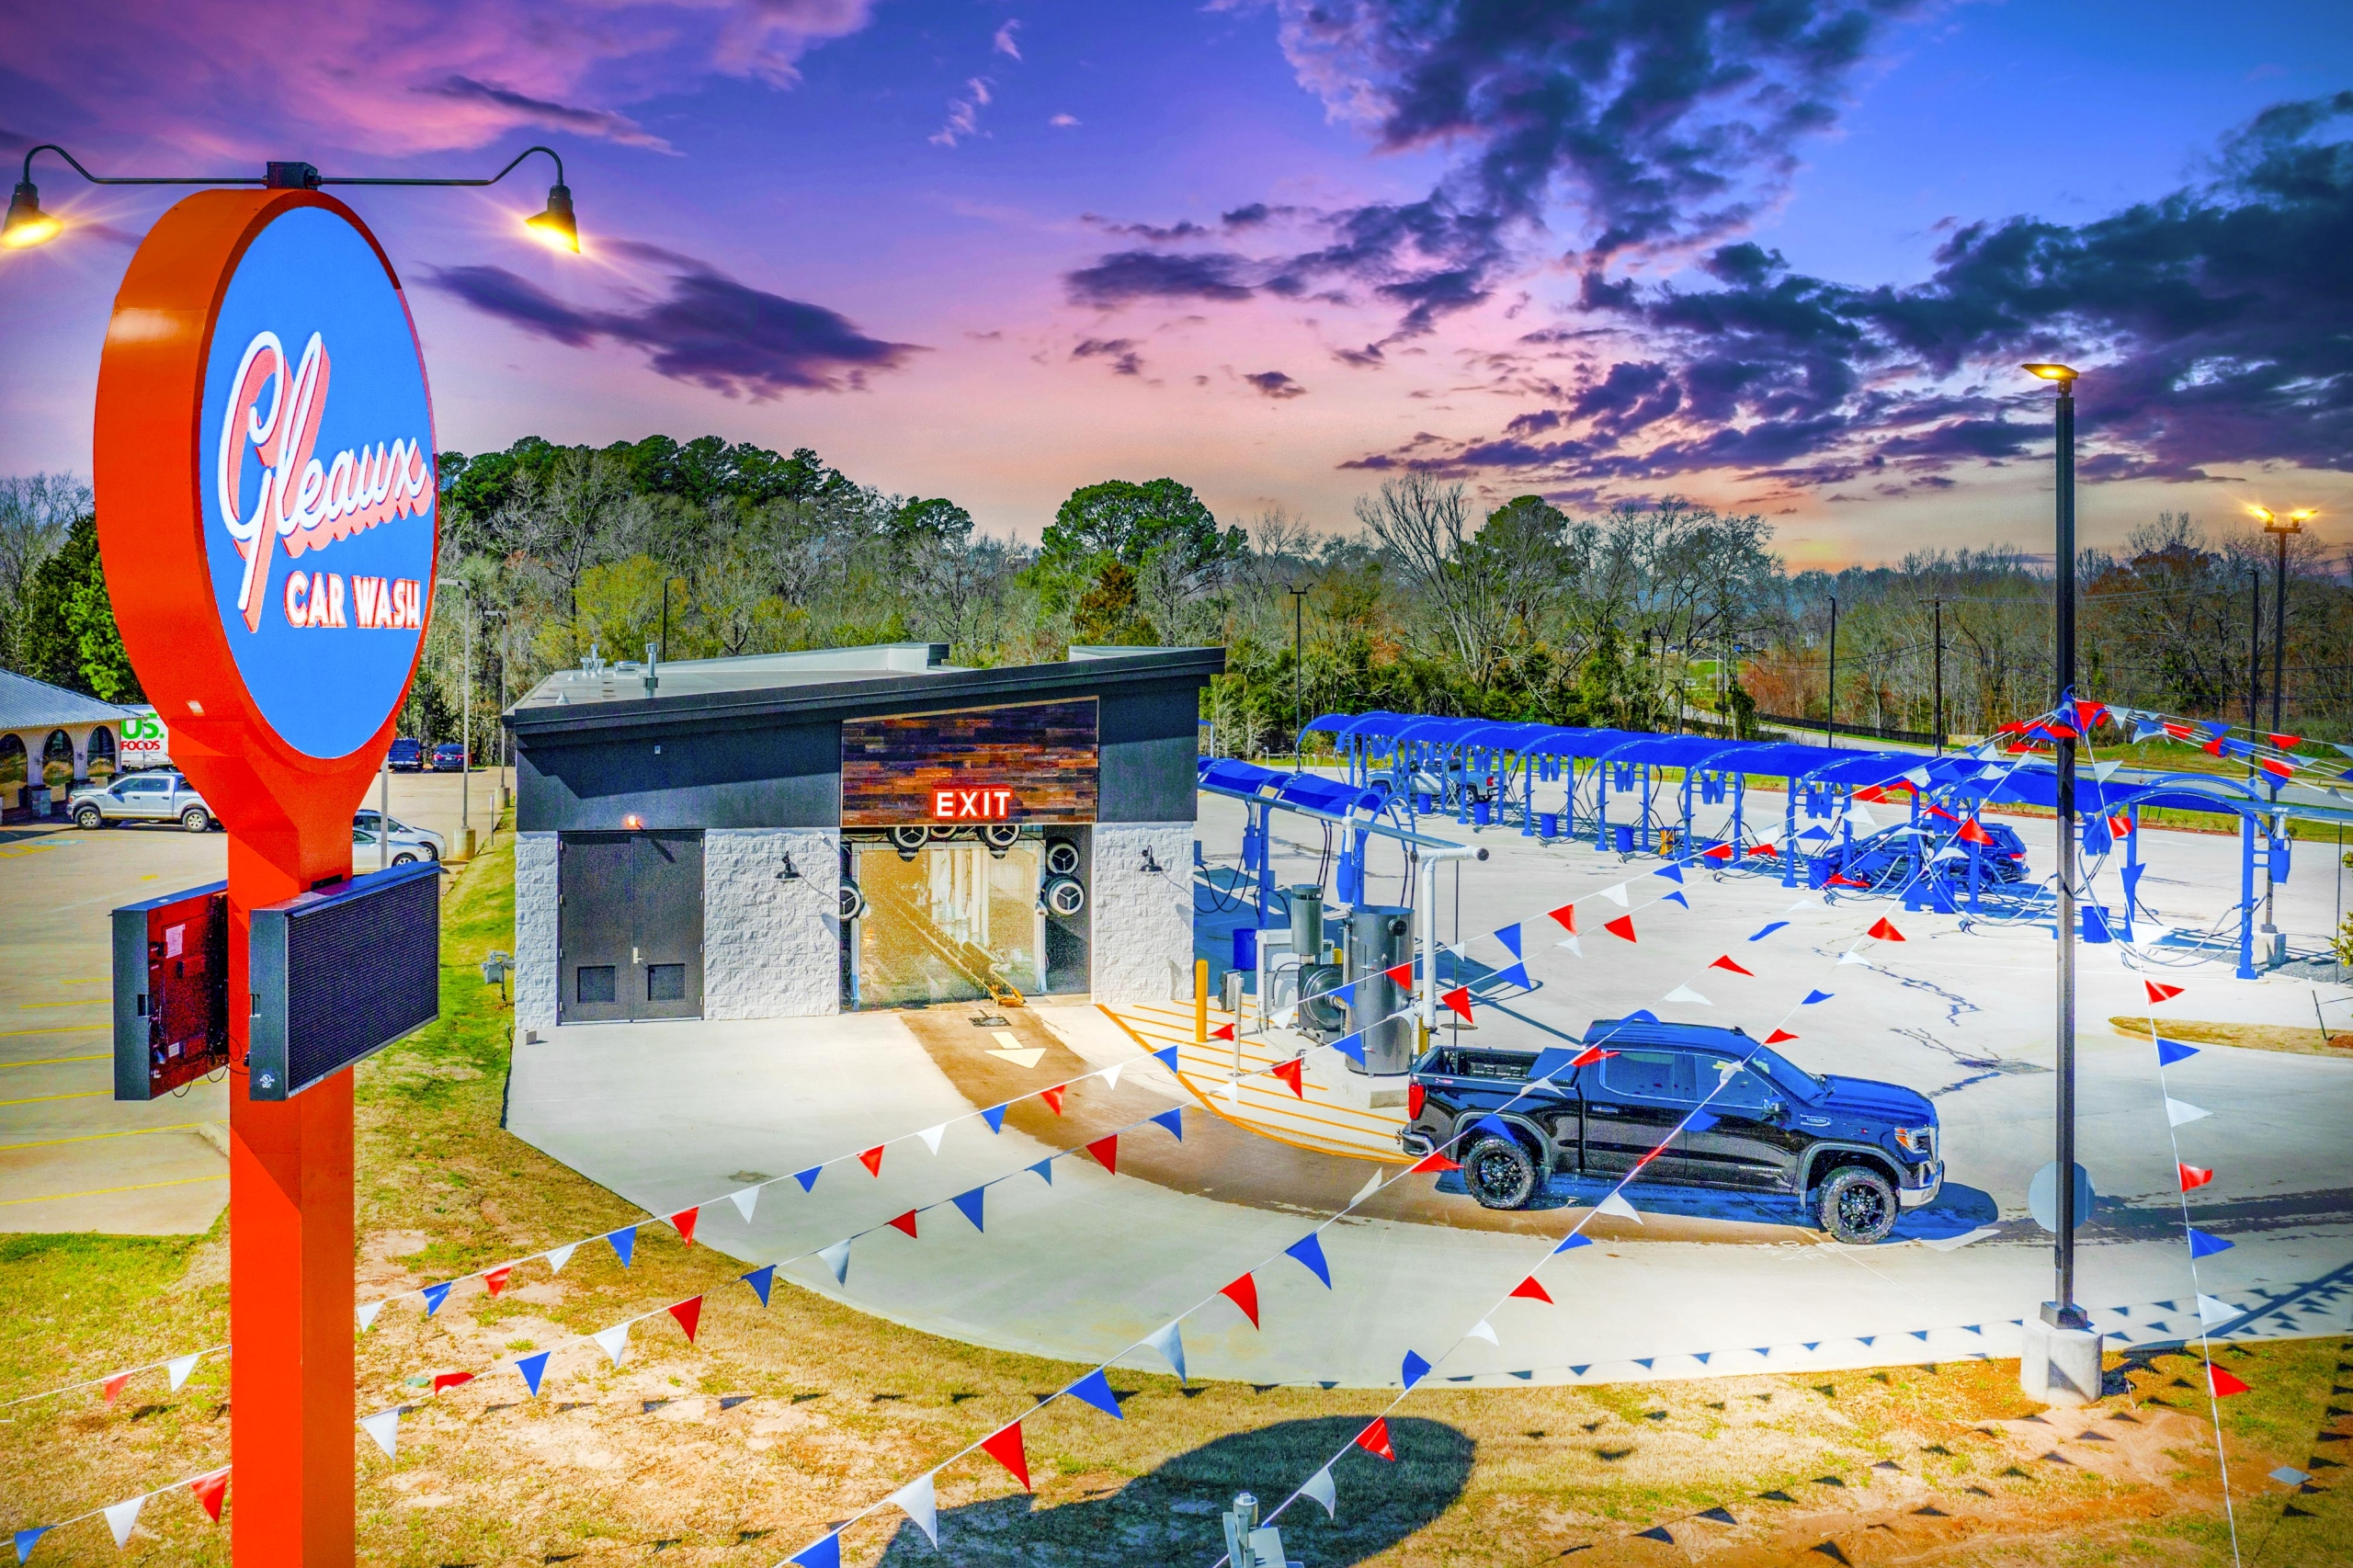 Car Wash Businesses For Sale Are They A Good Investment Sands Investment Group Sig